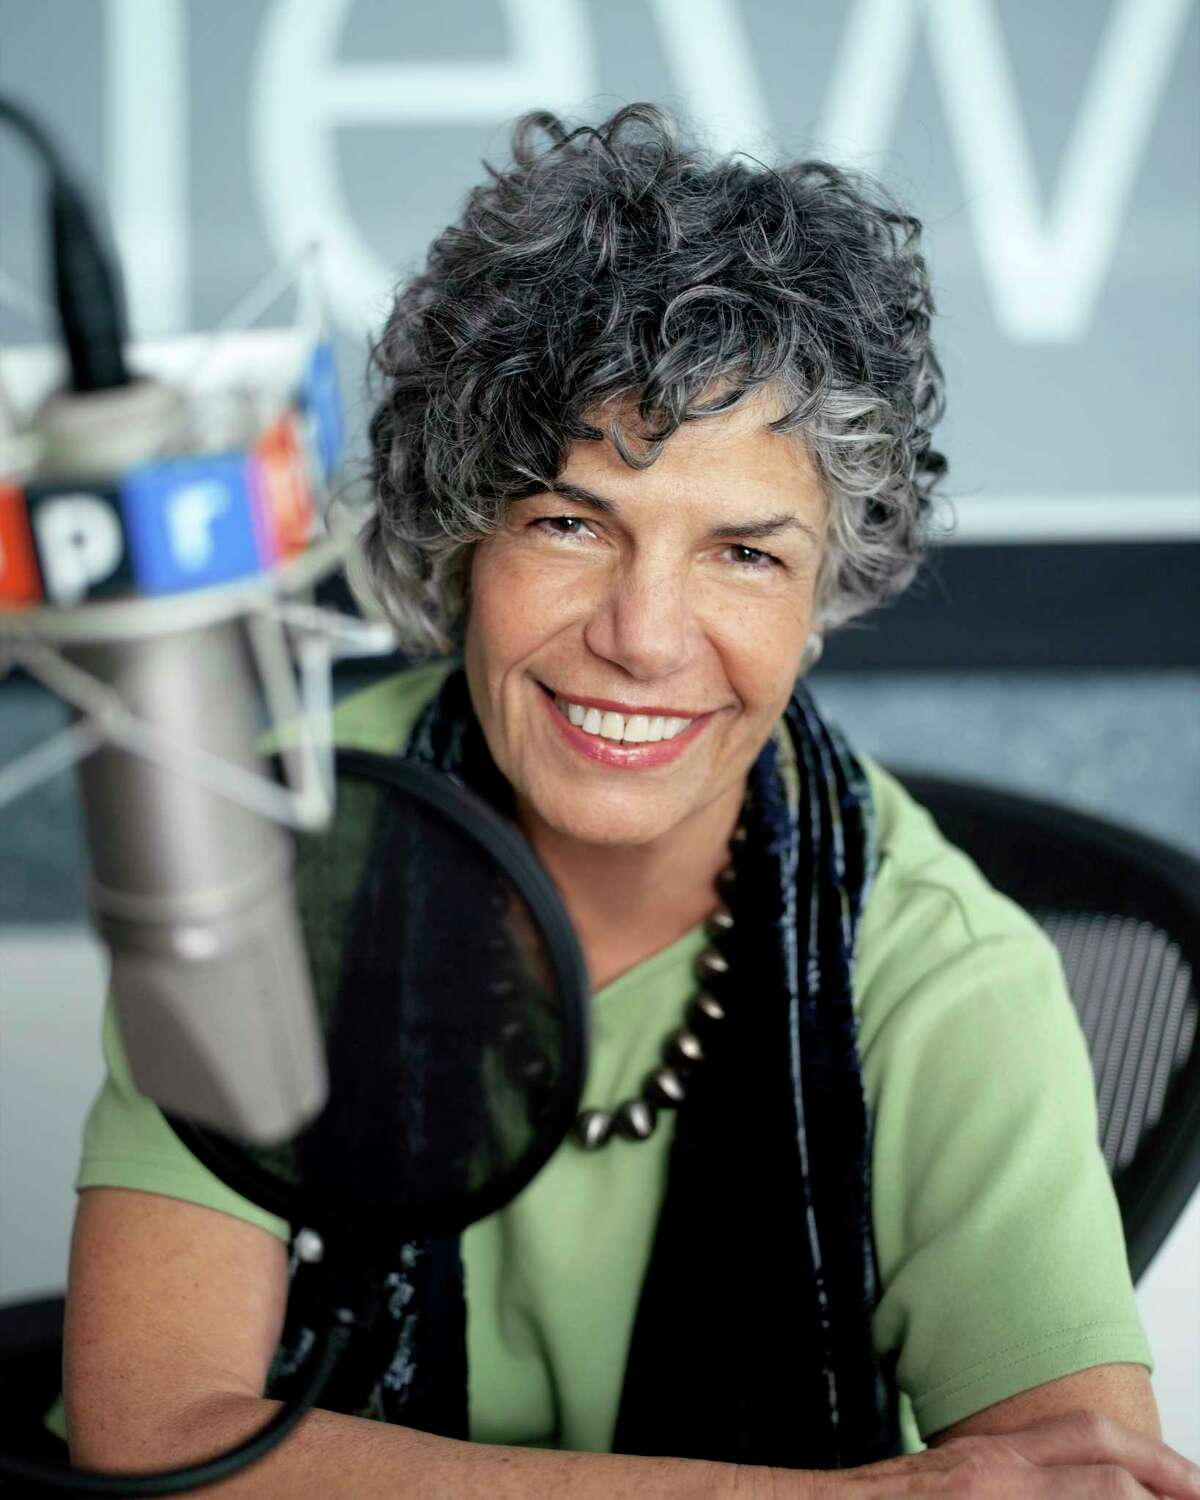 NPR Special Correspondent Susan Stamberg (pictured) will interview artist Vincent Valdez at the McNay Art Museum. They will talk about Valdez' work, including